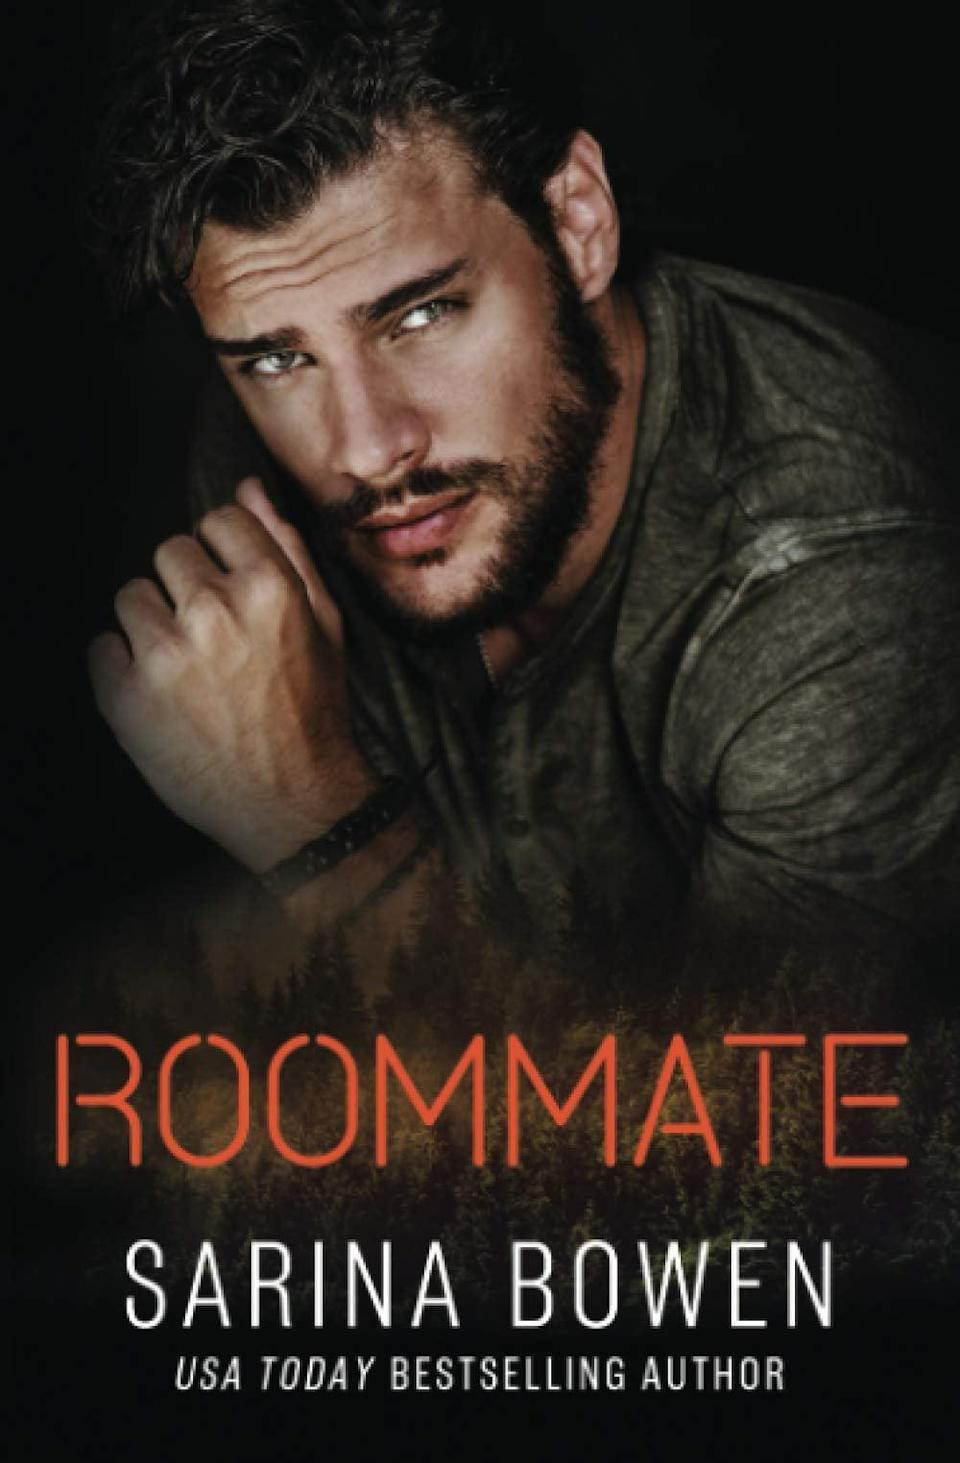 <p>Don't let the broody cover fool you, <span><strong>Roommate</strong></span> by Sarina Bowen isn't just steamy, it's also a warm-hearted romance between two men who are total opposites. Kieran is an actual lumberjack who is harboring secrets and guarding his heart. Roderick is a chatty baking enthusiet who is determined to get his roommate to open up, even if it means possibly being kicked out of their shared house - and as you might expect, sparks will definitely fly between these guys, no matter how hard they resist their mutual attraction. </p> <p><em>Jan. 12</em></p>